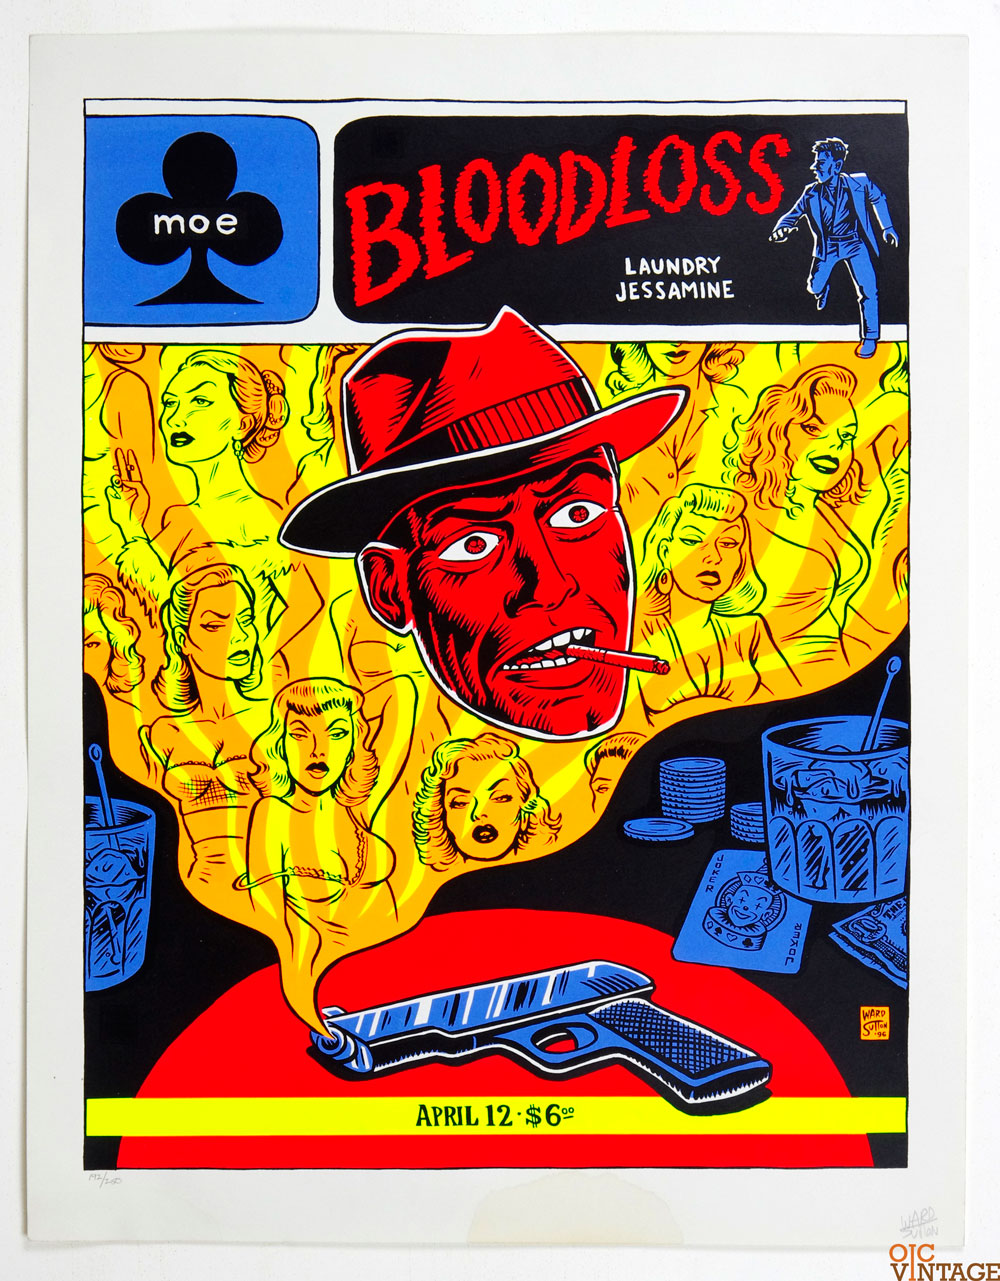 Bloodloss Poster Laundry Jessamine 1996 Apr 12 MOE Seattle Ward Sutton Signed Numbered